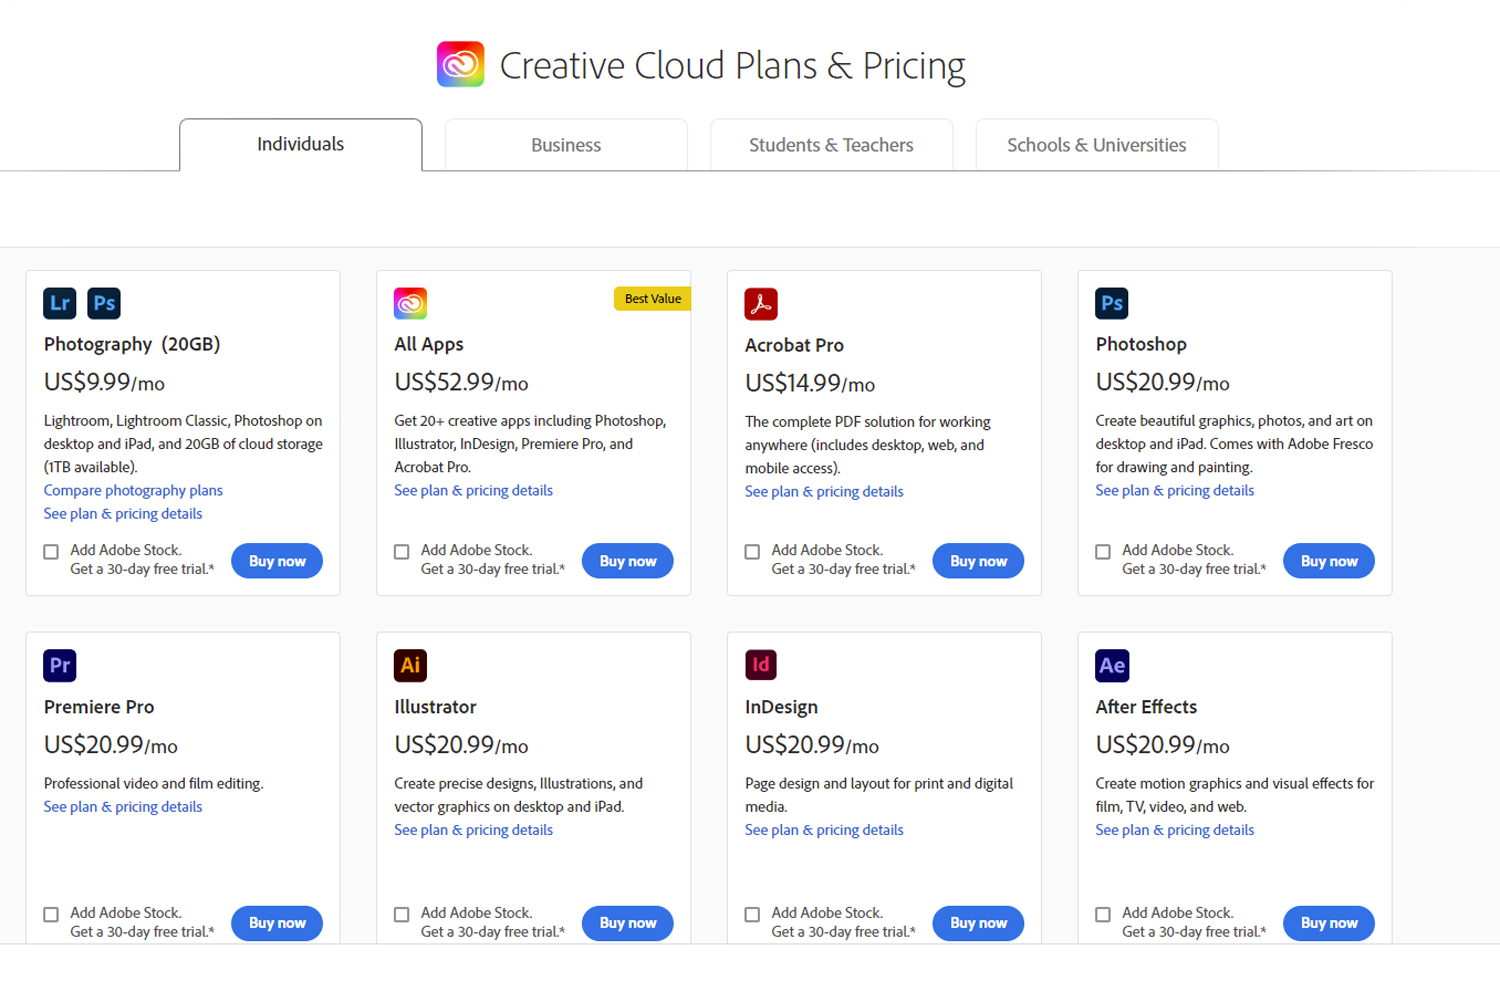 Creative Cloud pricing for Photoshop